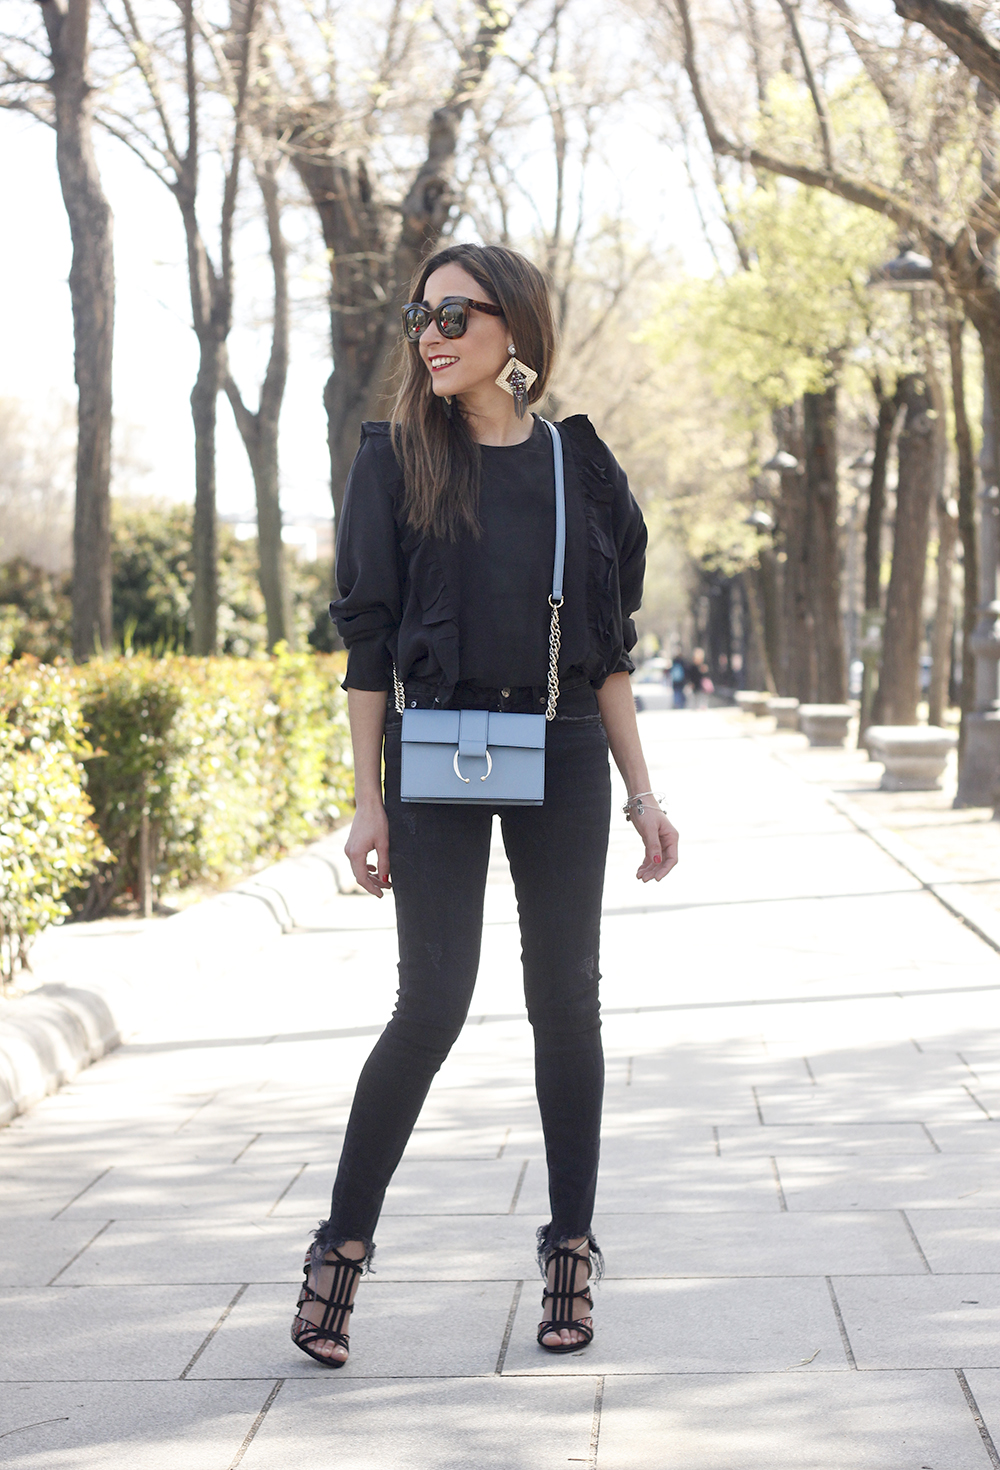 Black ruffled shirt black jeans uterqüe bag earrings sandals outfit style fashion céline sunnies spring12